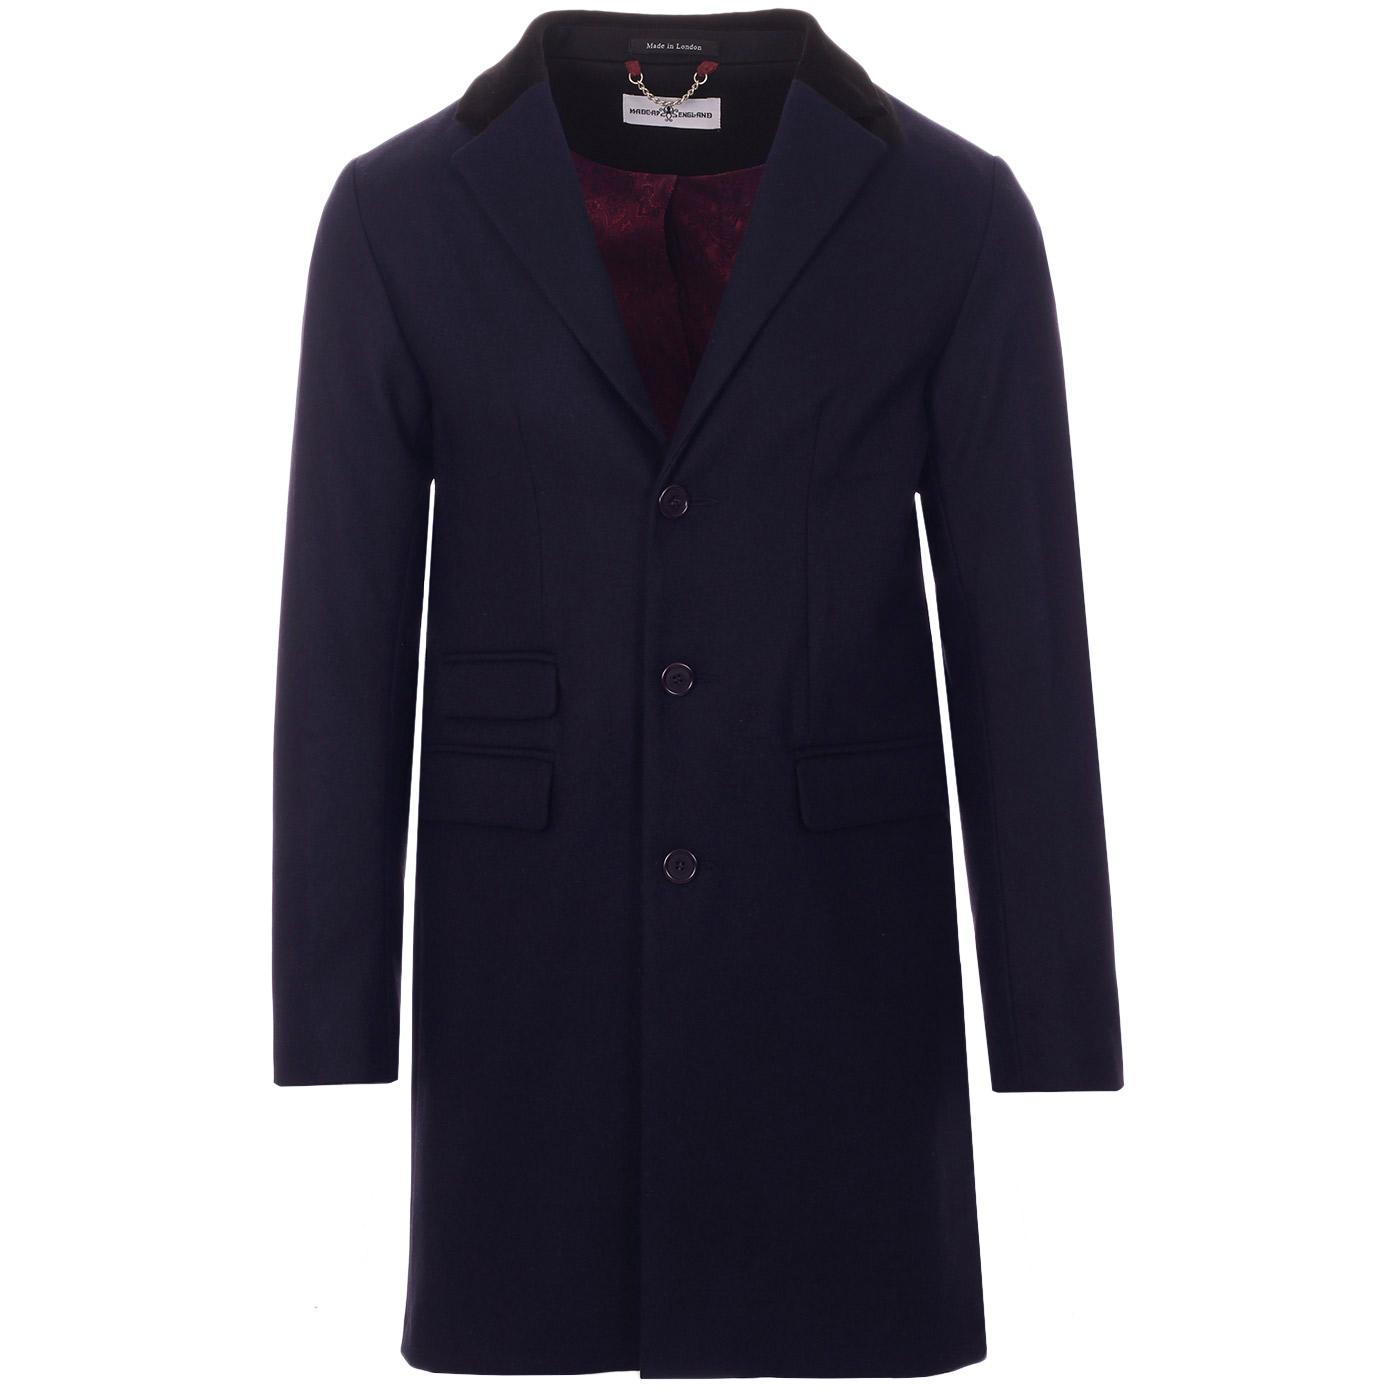 MADCAP ENGLAND Made in England Mod Covert Coat (N)